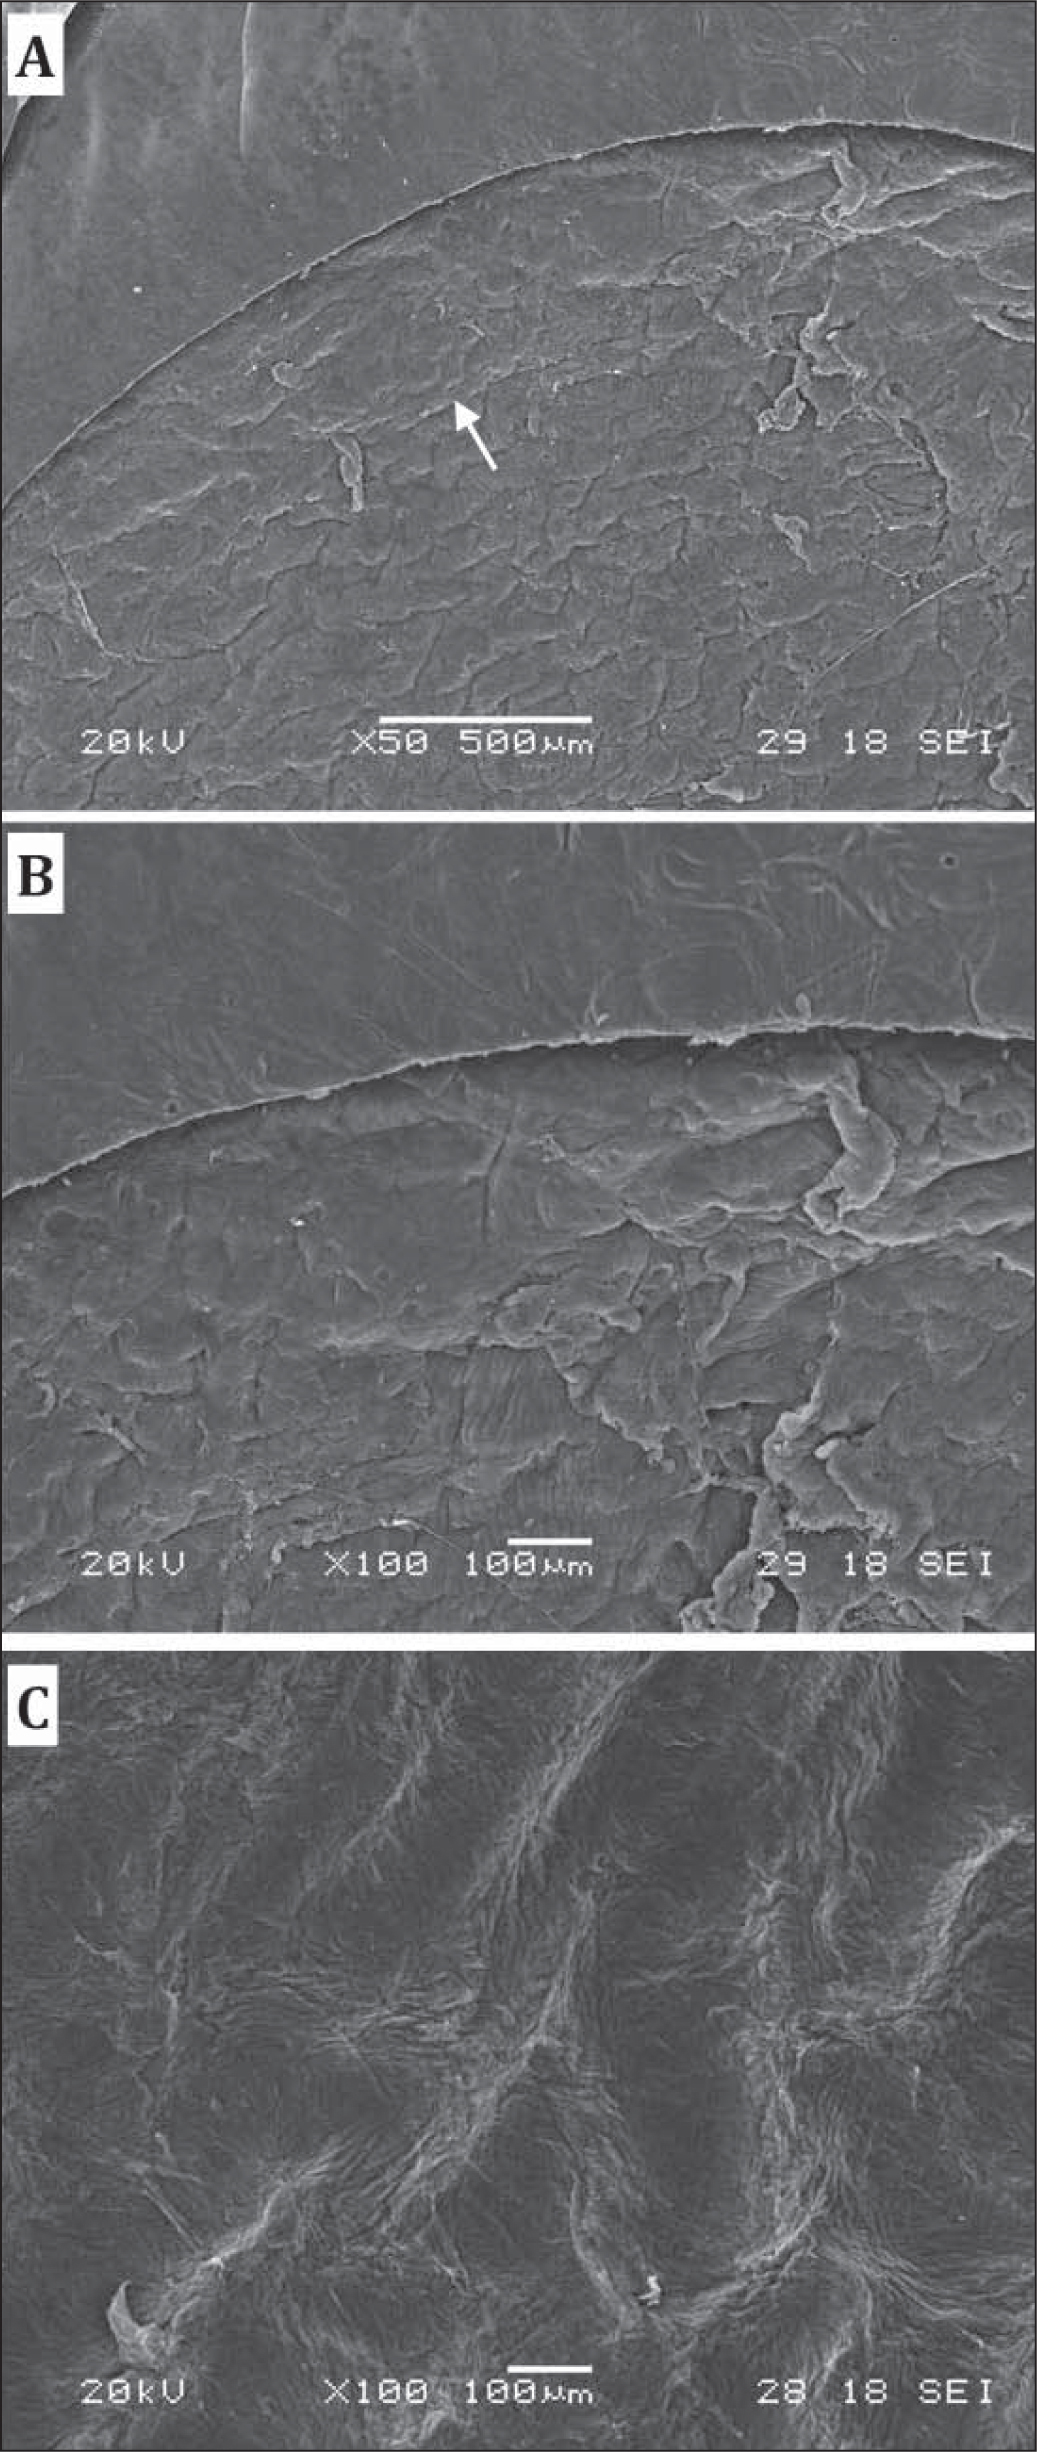 Scanning electron microscopy (SEM) images of the corneal stromal bed treated with pattern C. (A) The transition between lamellar ring and cap cut is barely visible. Arrow shows a slight depression of the cap cut from the lamellar ring. (B) The side cut and surface of lamellar ring. (C) The central corneal flap bed.